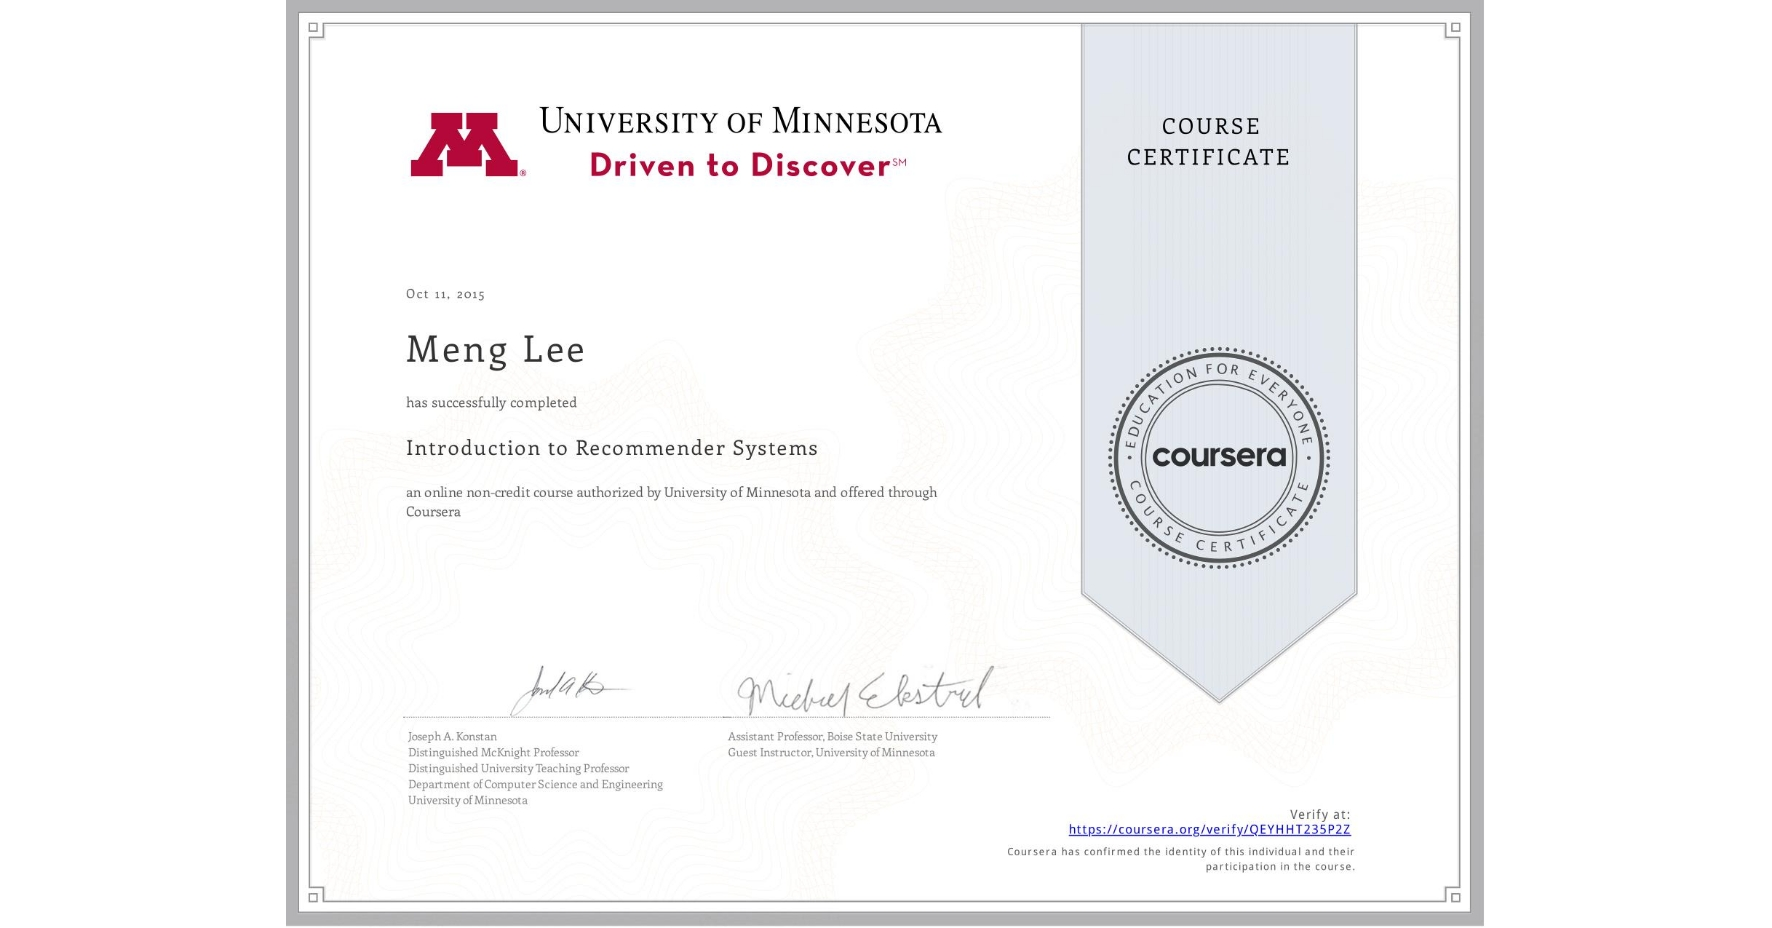 View certificate for 孟 李, Introduction to Recommender Systems, an online non-credit course authorized by University of Minnesota and offered through Coursera